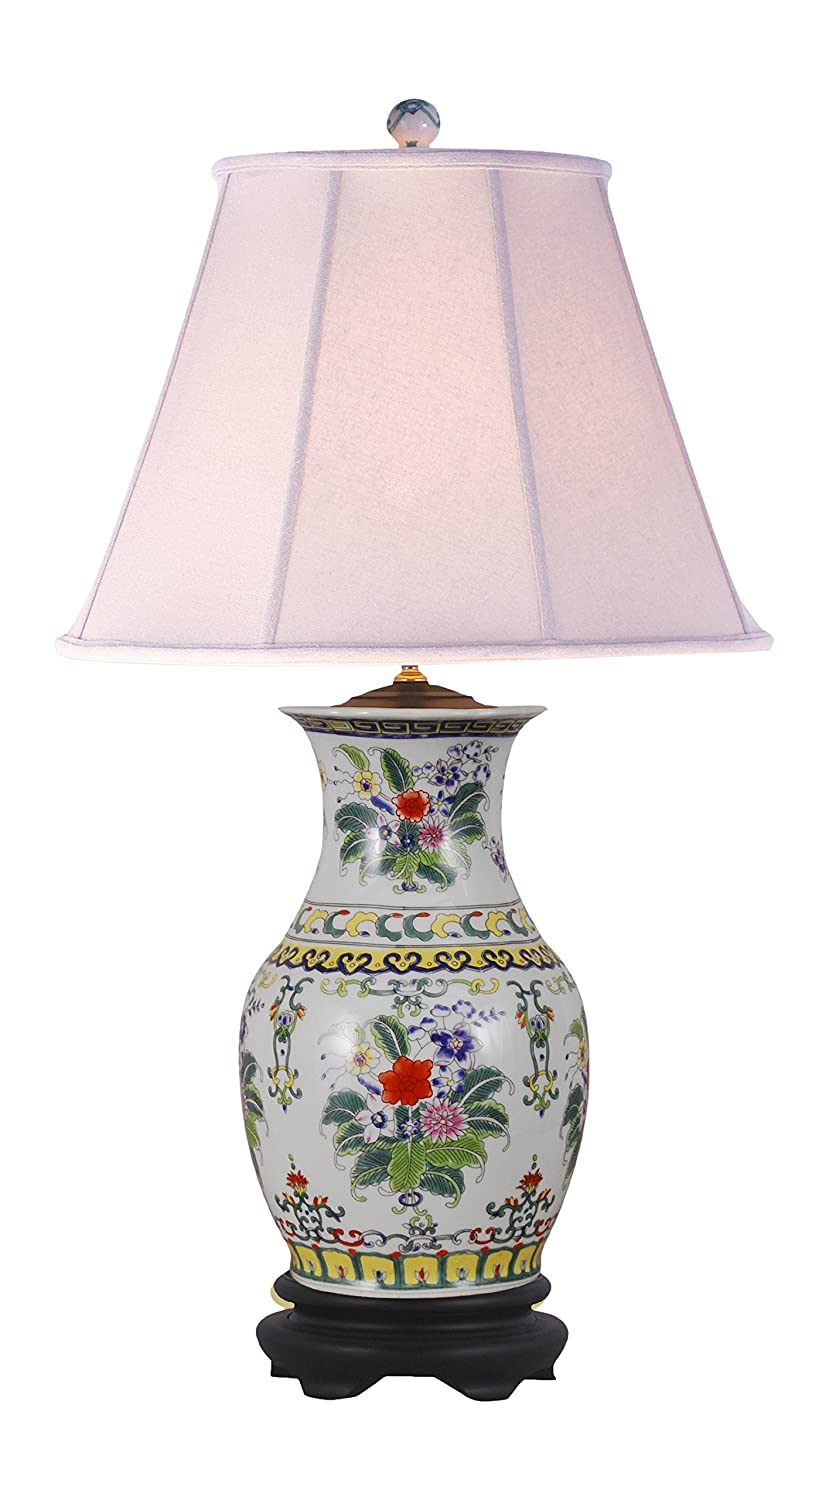 East enterprises lpbwh1012k table lamp multicolored amazon geotapseo Gallery